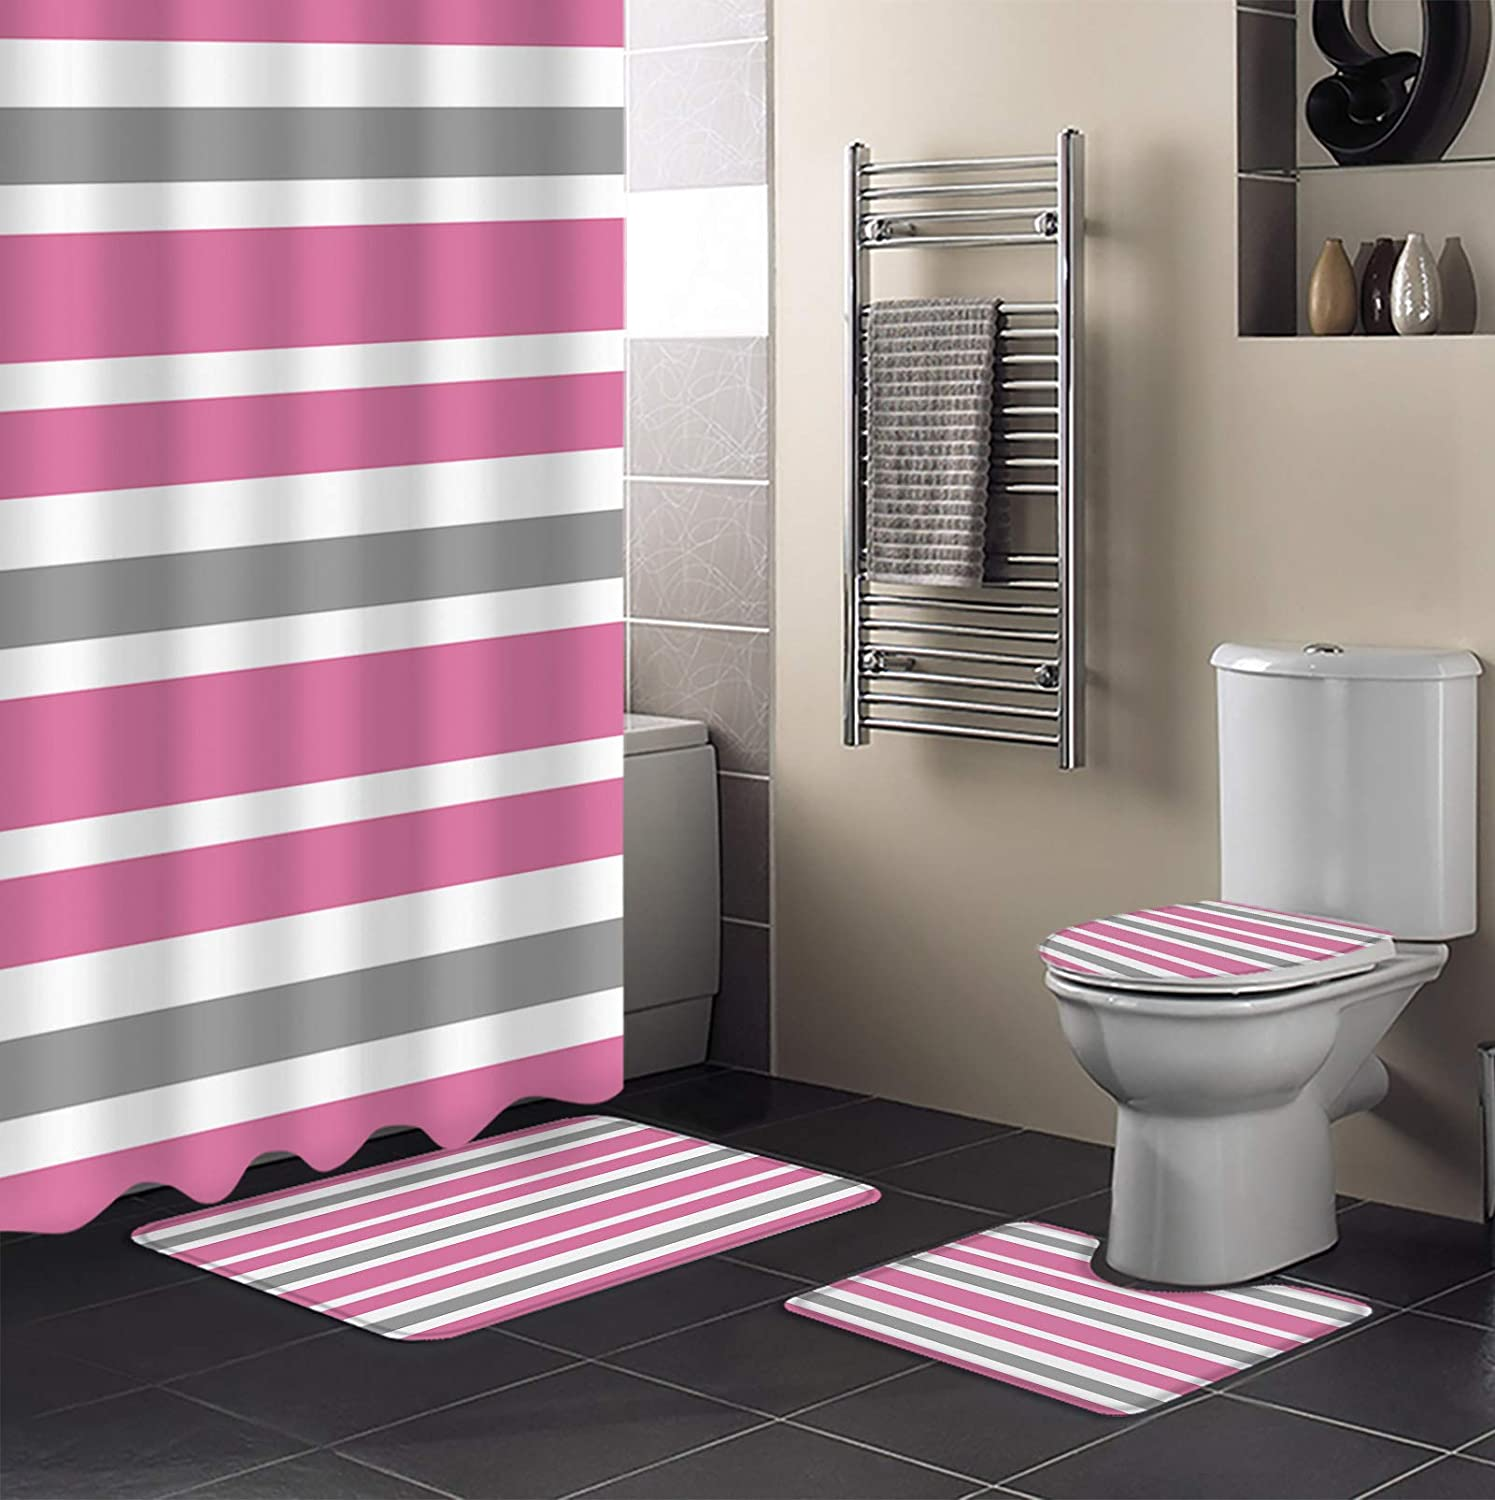 4 Piece Shower Curtain Sets Milwaukee Mall with Cover Lid Toilet El Paso Mall Rugs Non-Slip